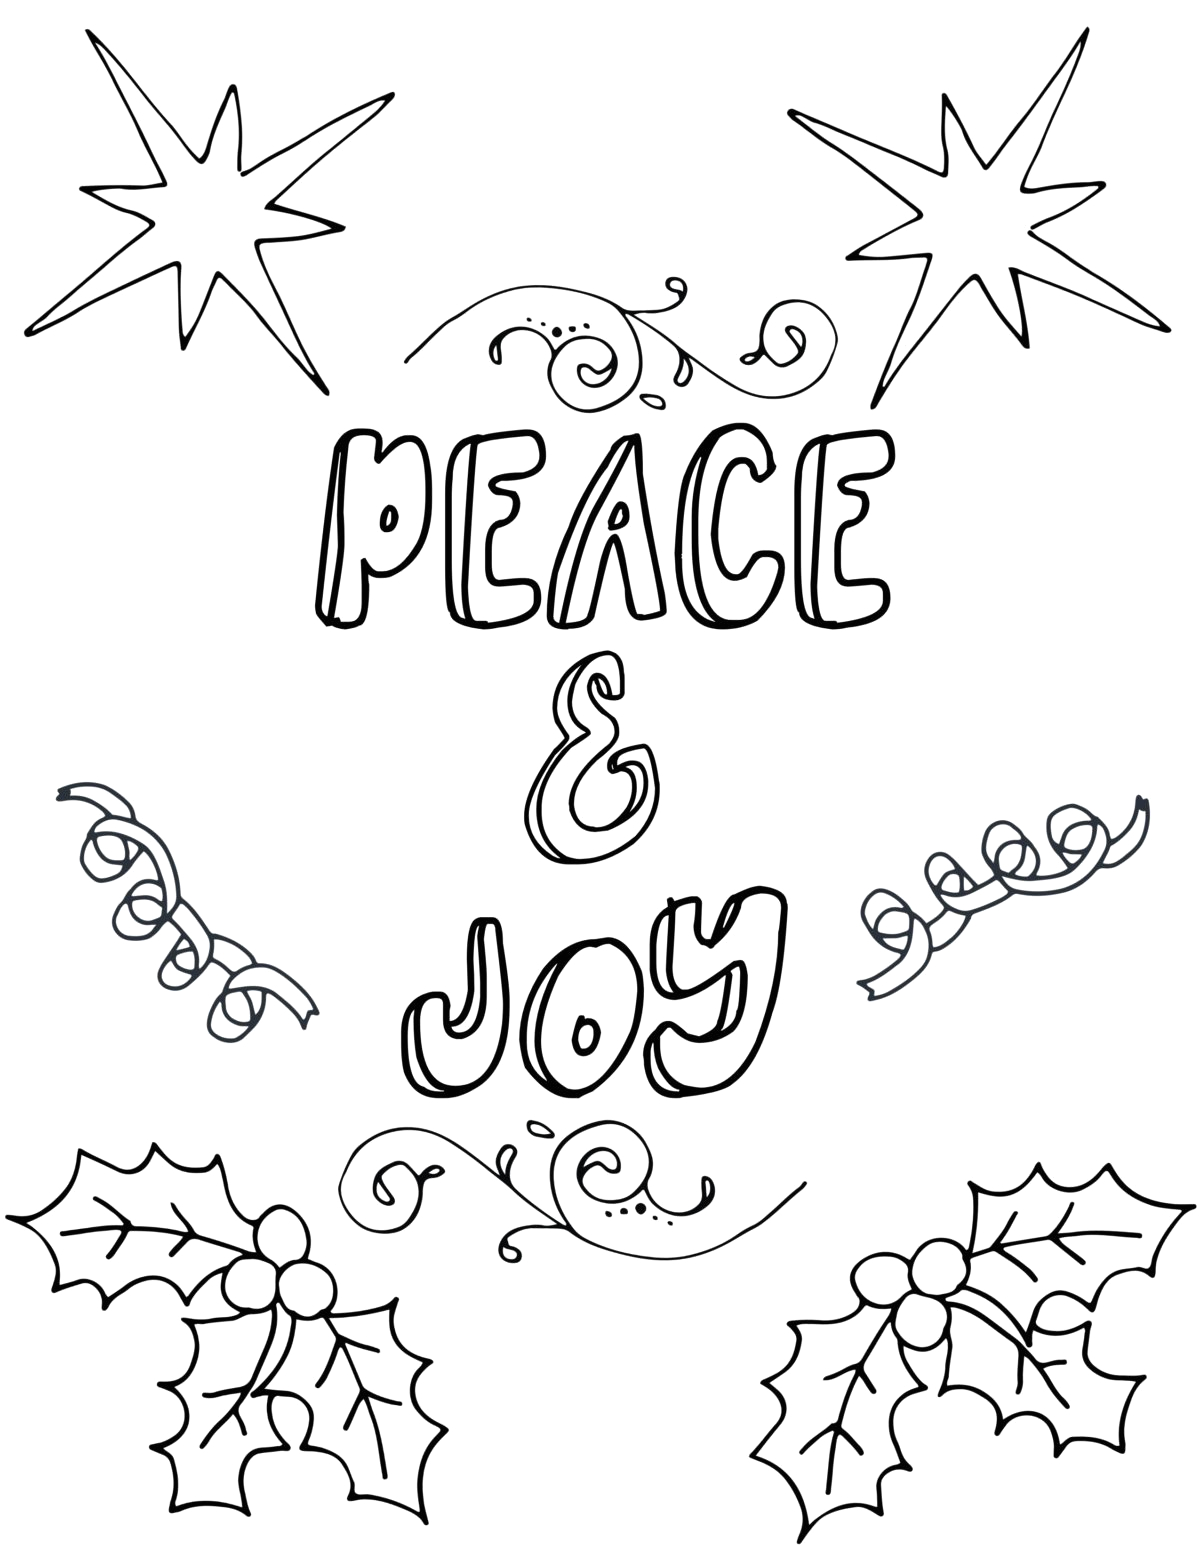 Free Christmas Printable Coloring Pages for Adults Free Printable Christmas Coloring Pages for Adults